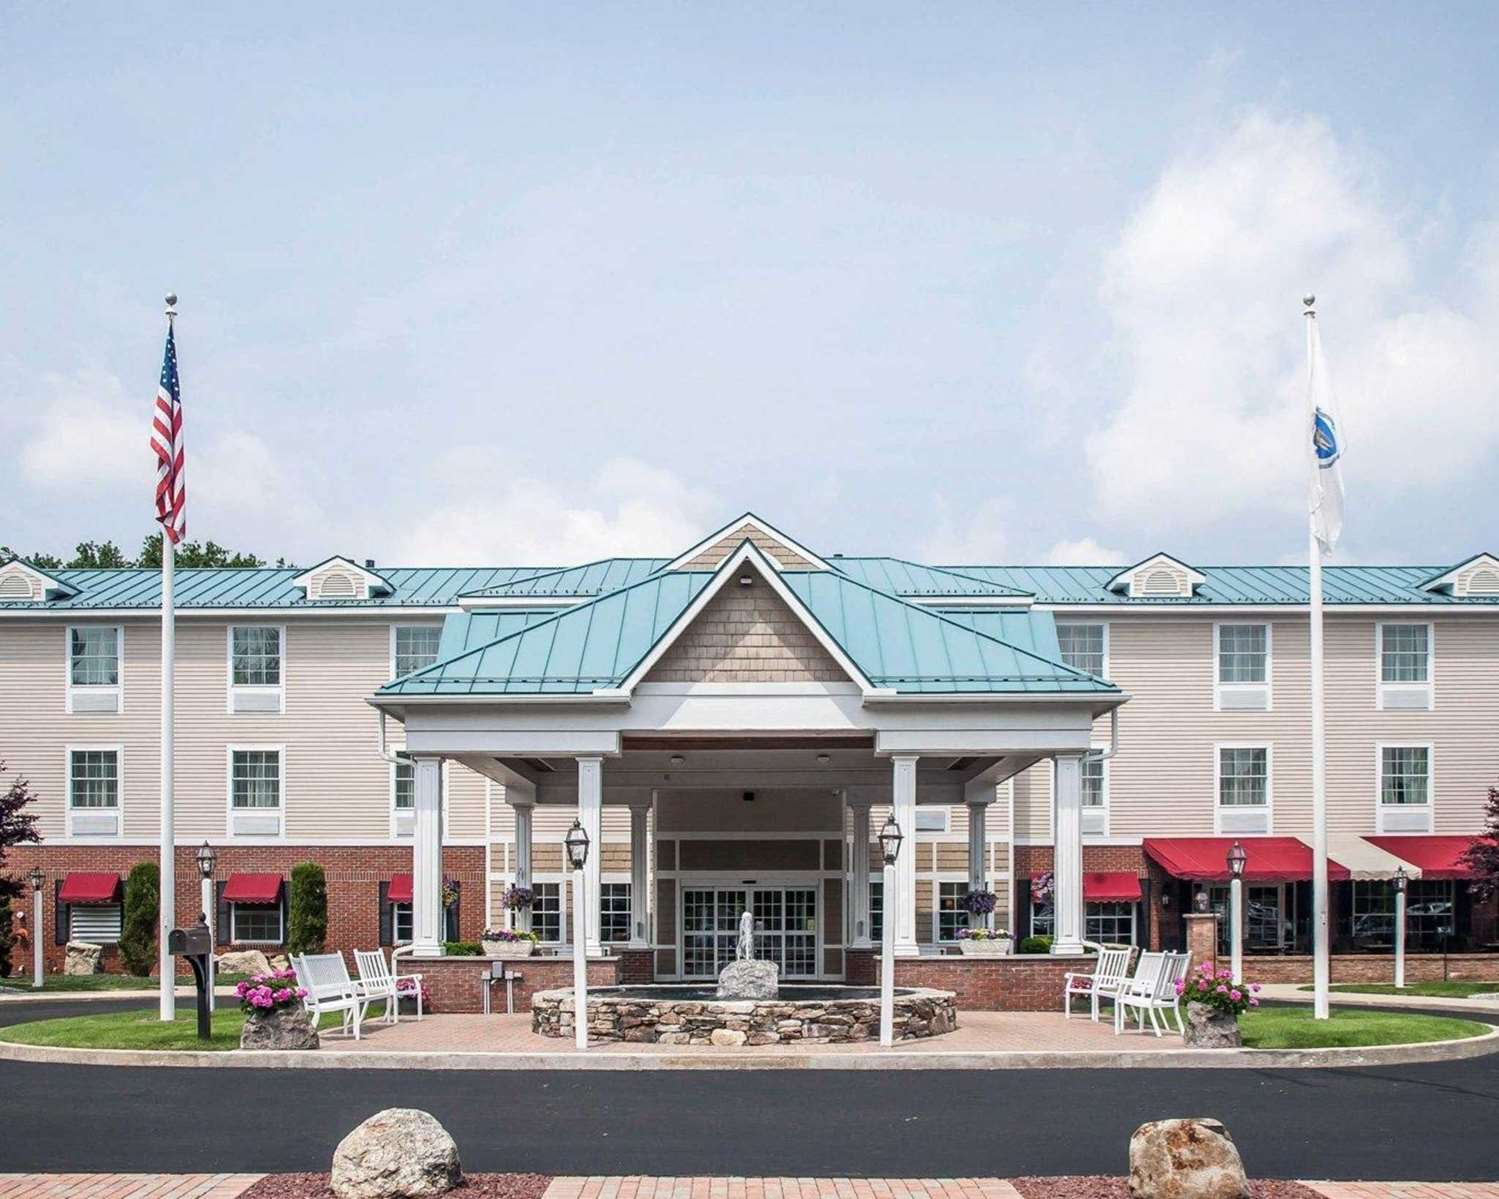 Comfort Inn & Suites Colonial Sturbridge